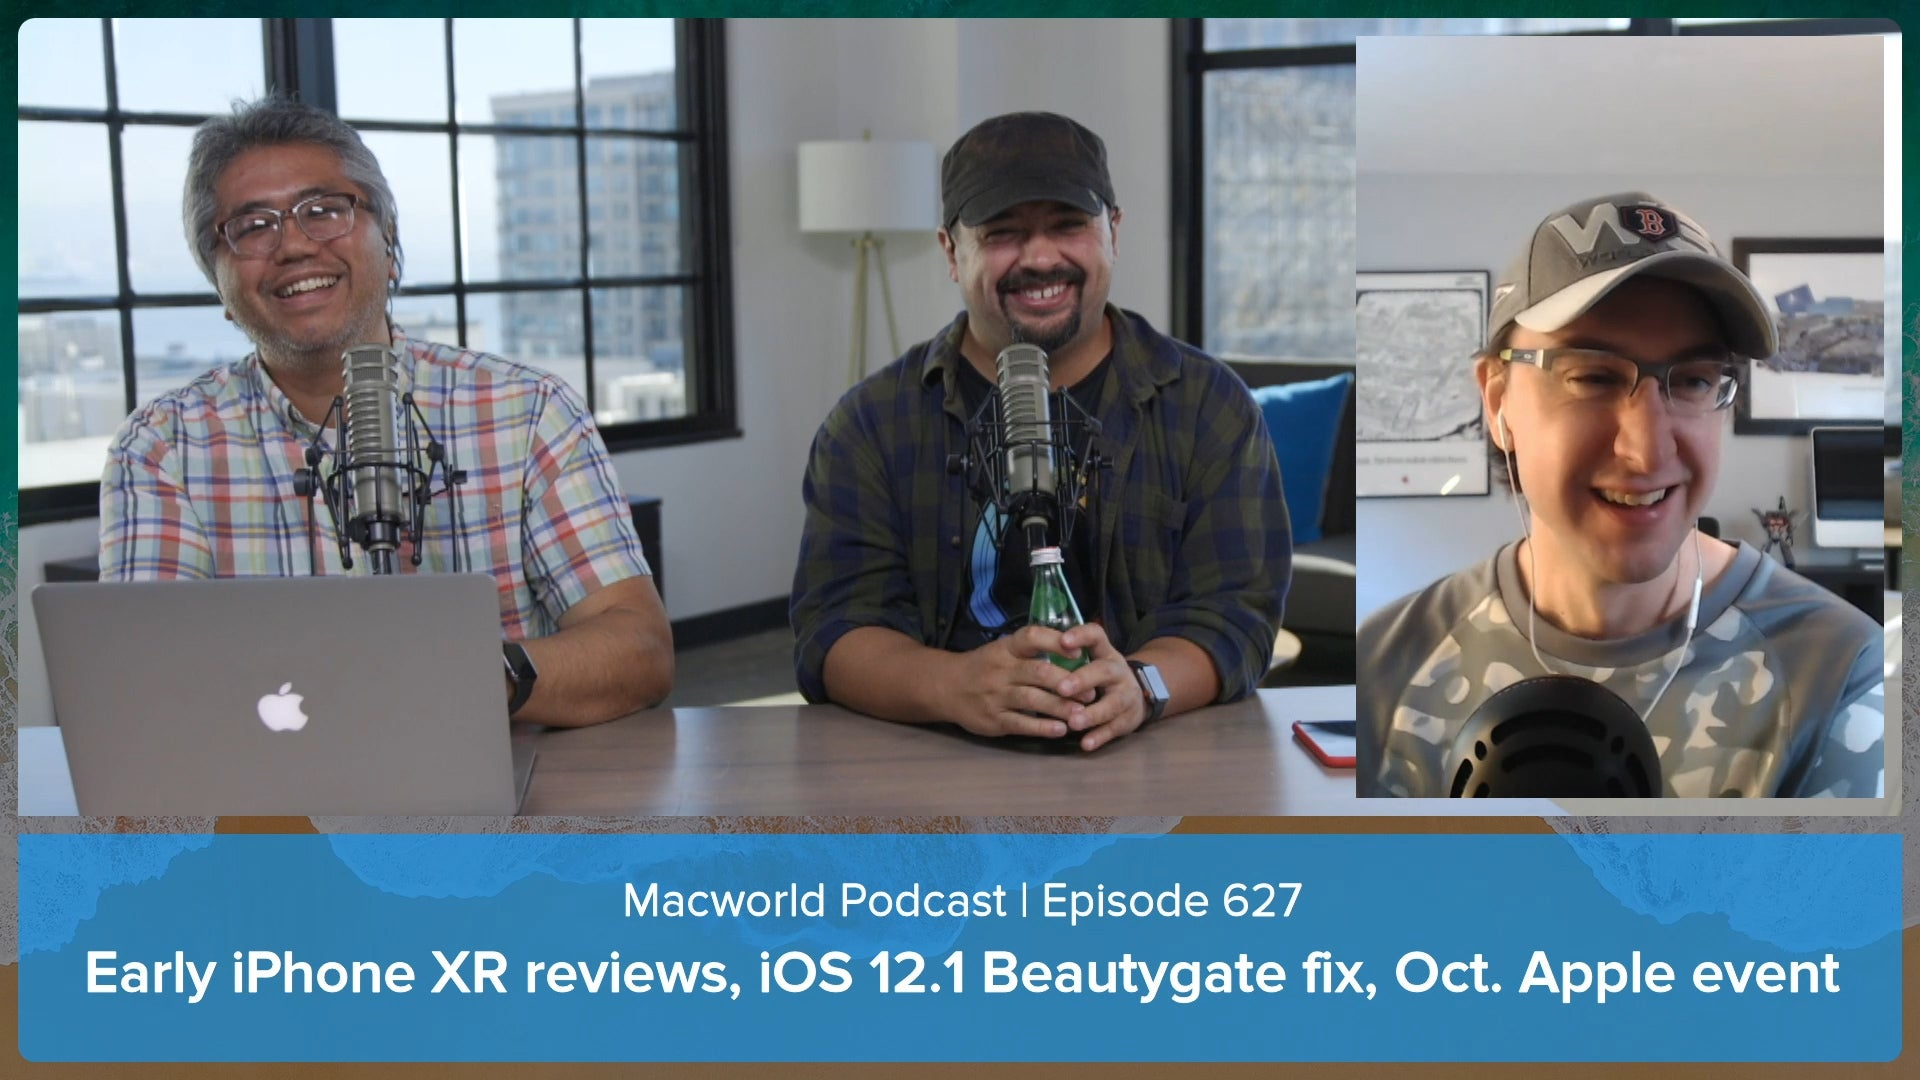 Macworld Podcast 627